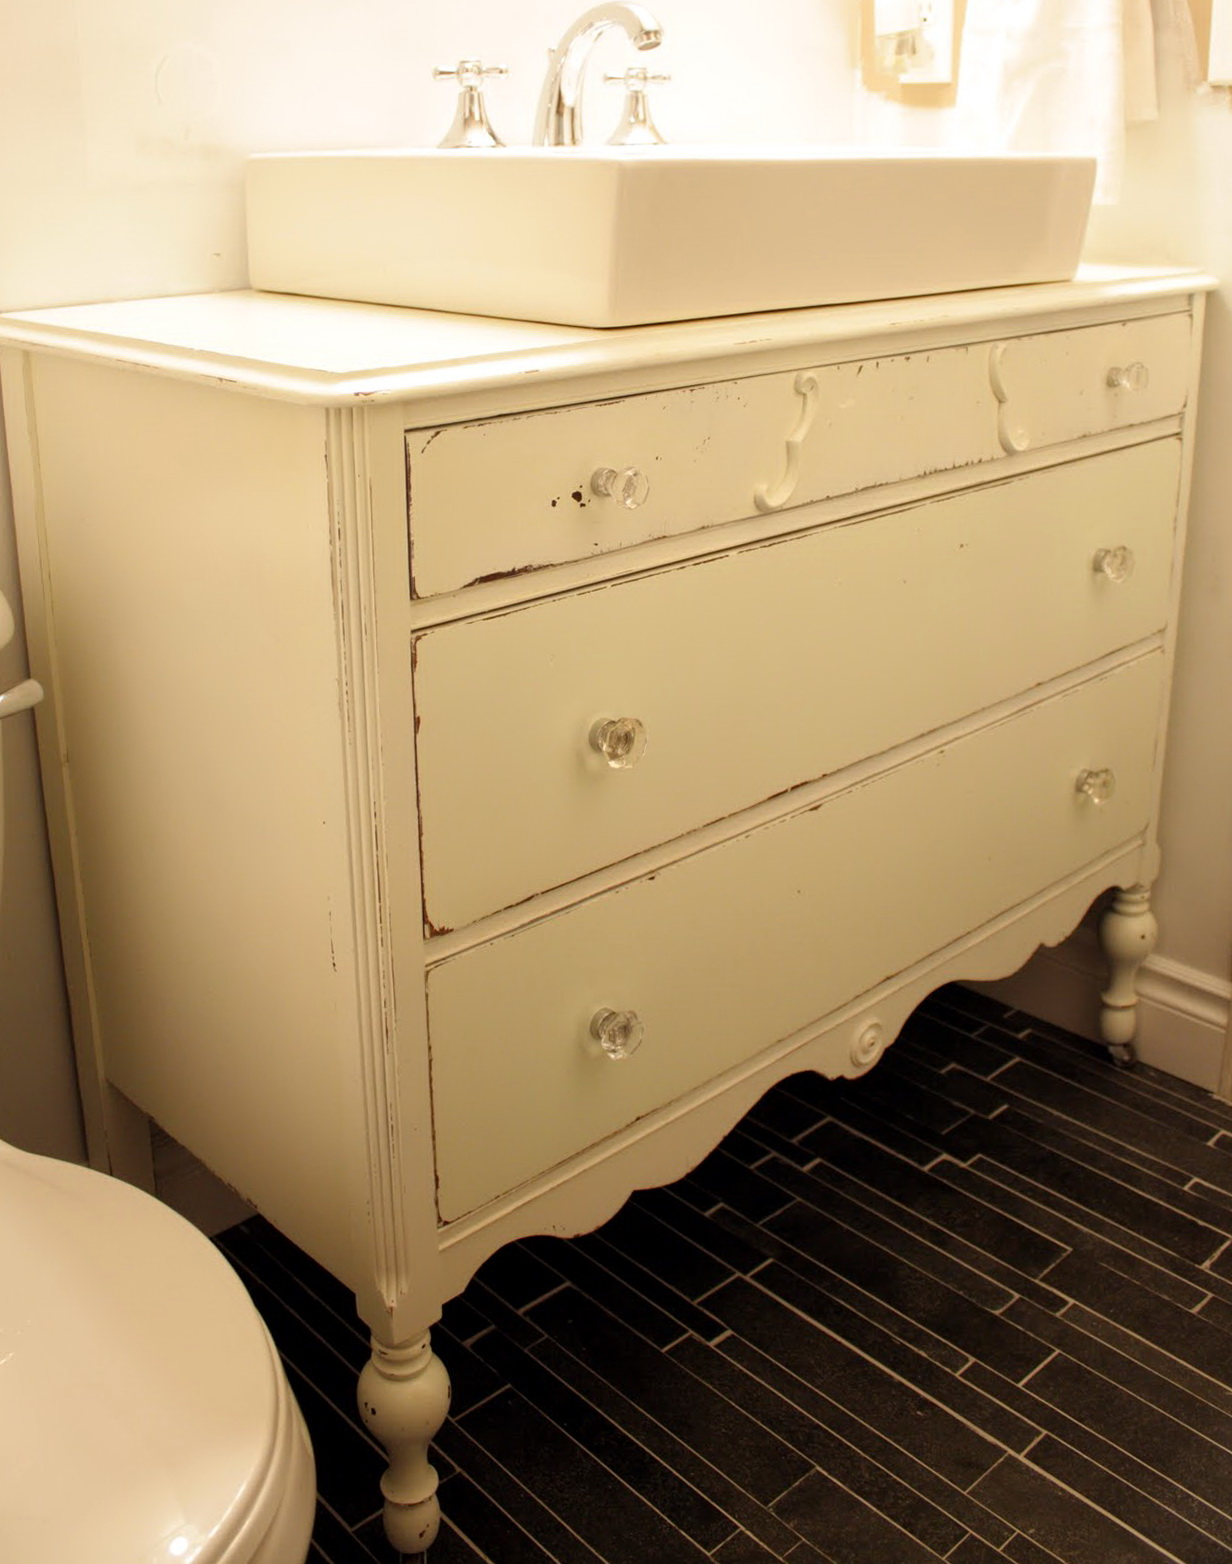 Used Bathroom Vanity Houston - Used Bathroom Vanity Houston Home Design Ideas